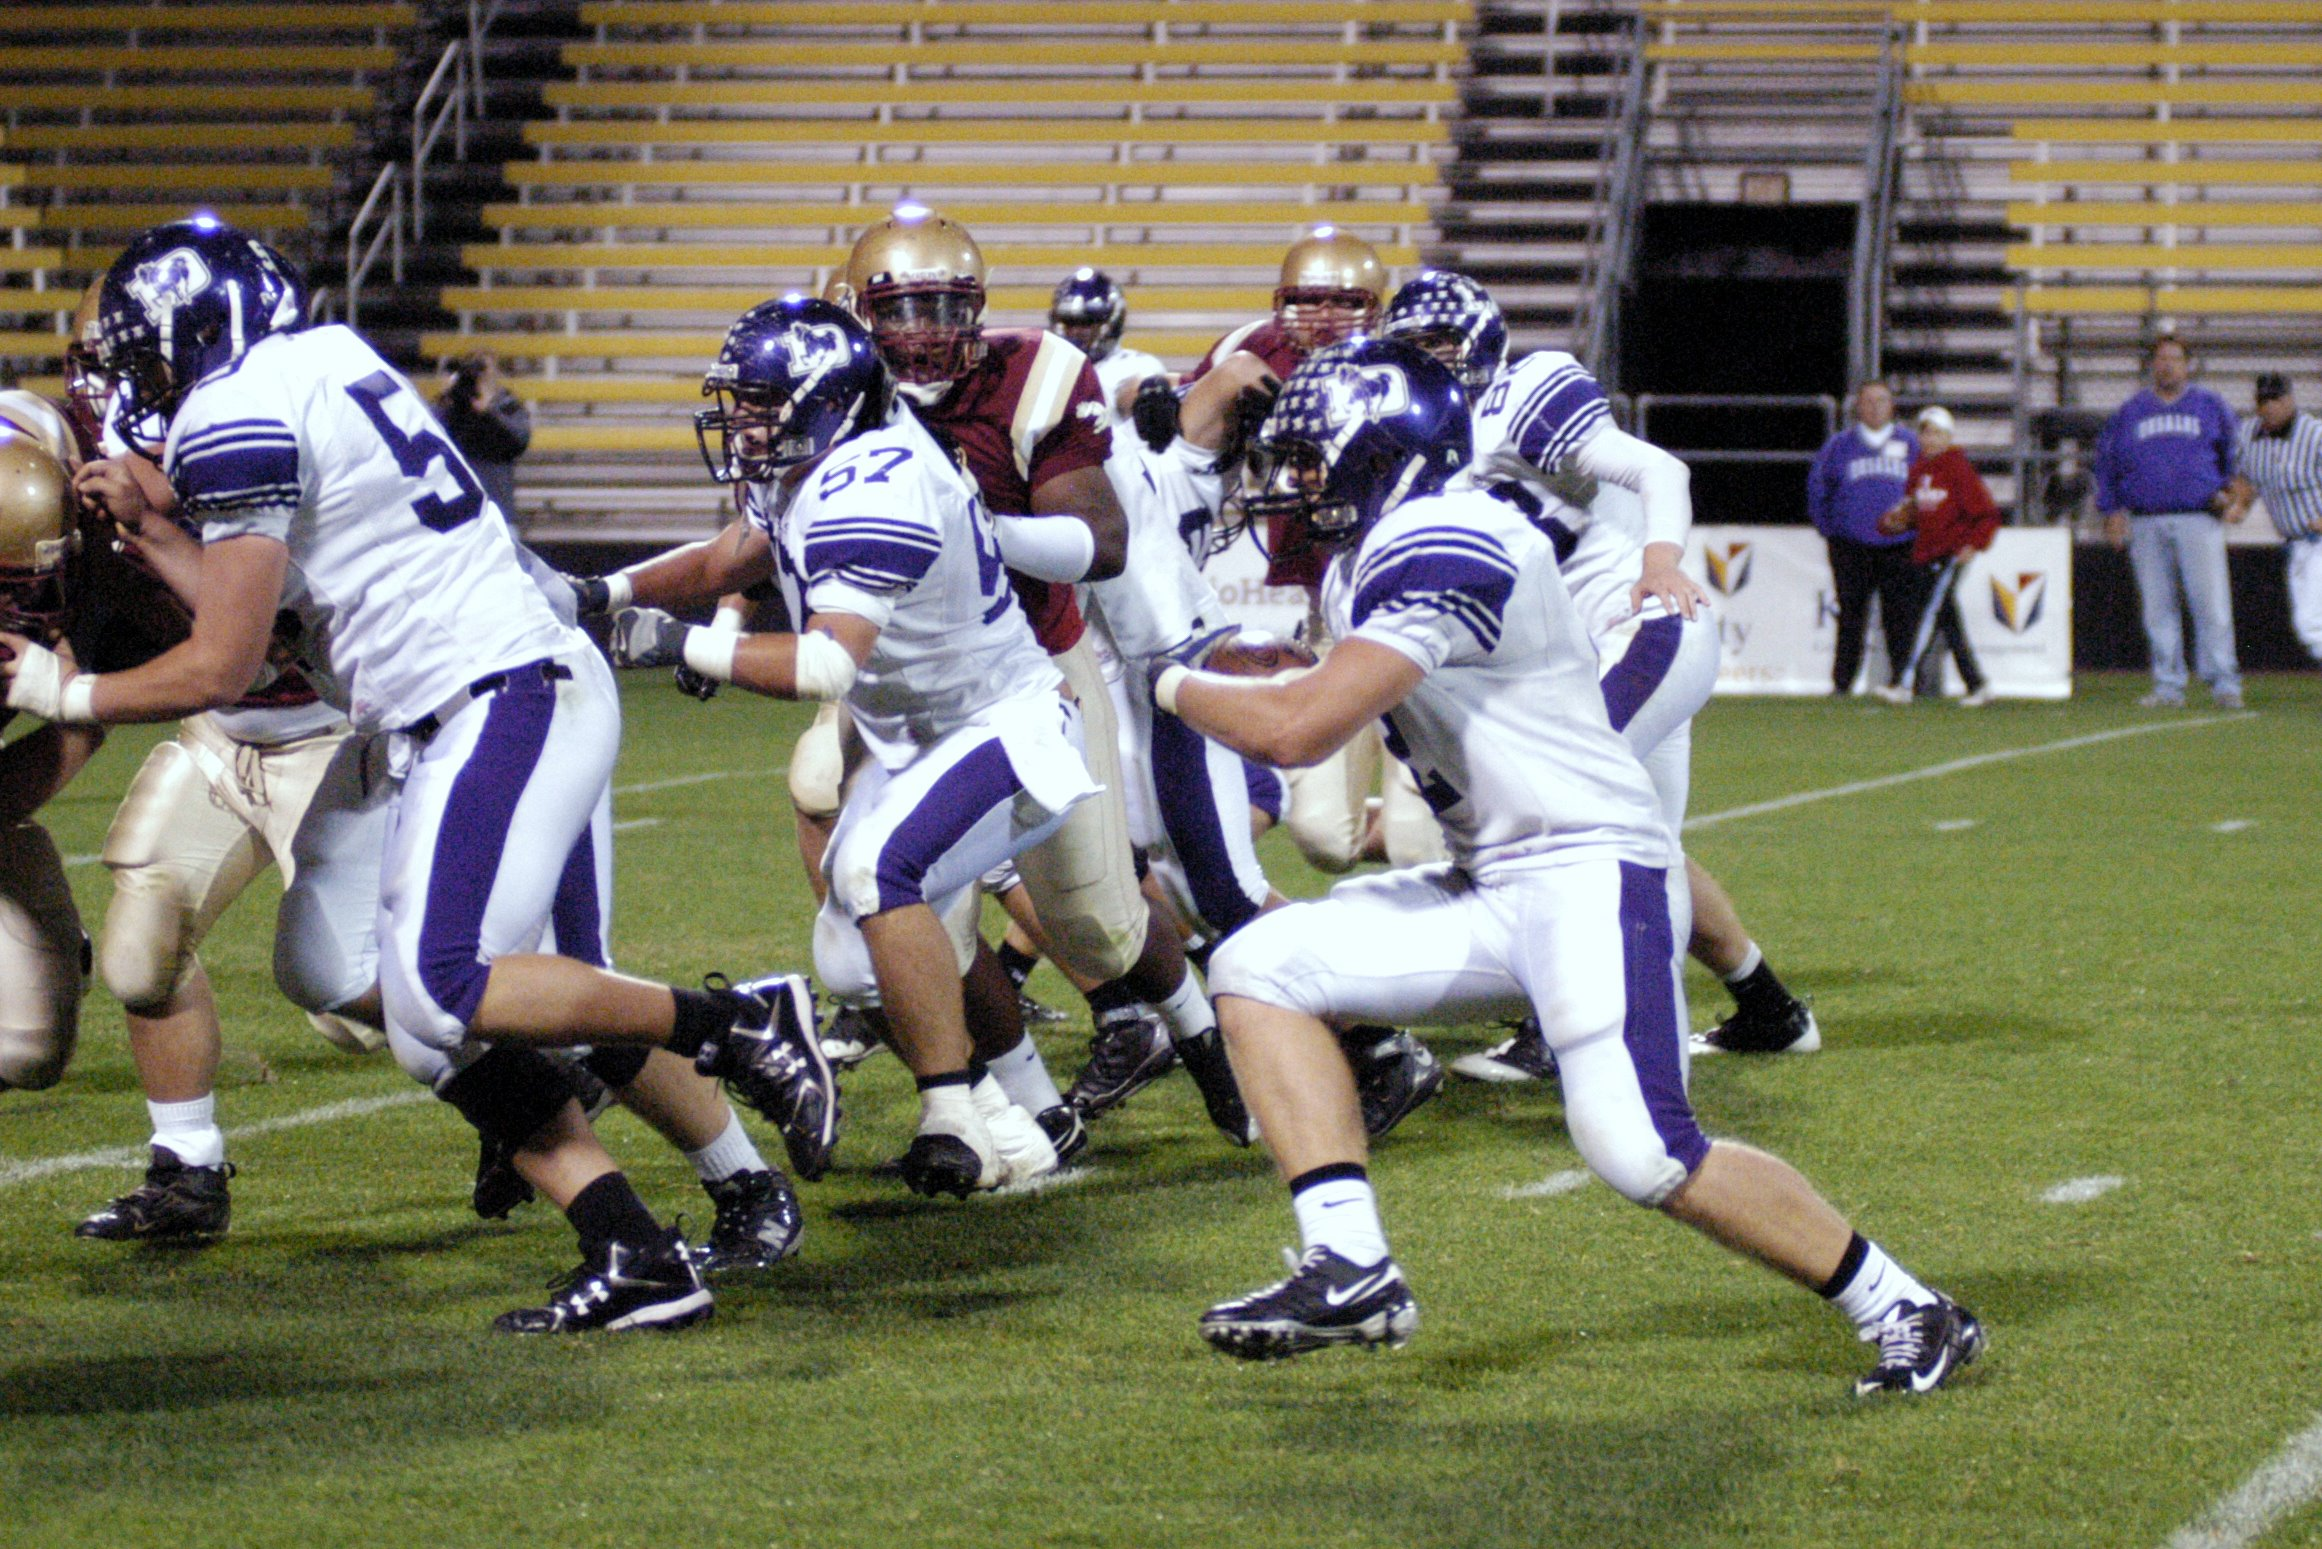 Jackson, pictured far left, leads the way for Josh Kusan in the 2008 Watterson game at Crew Stadium